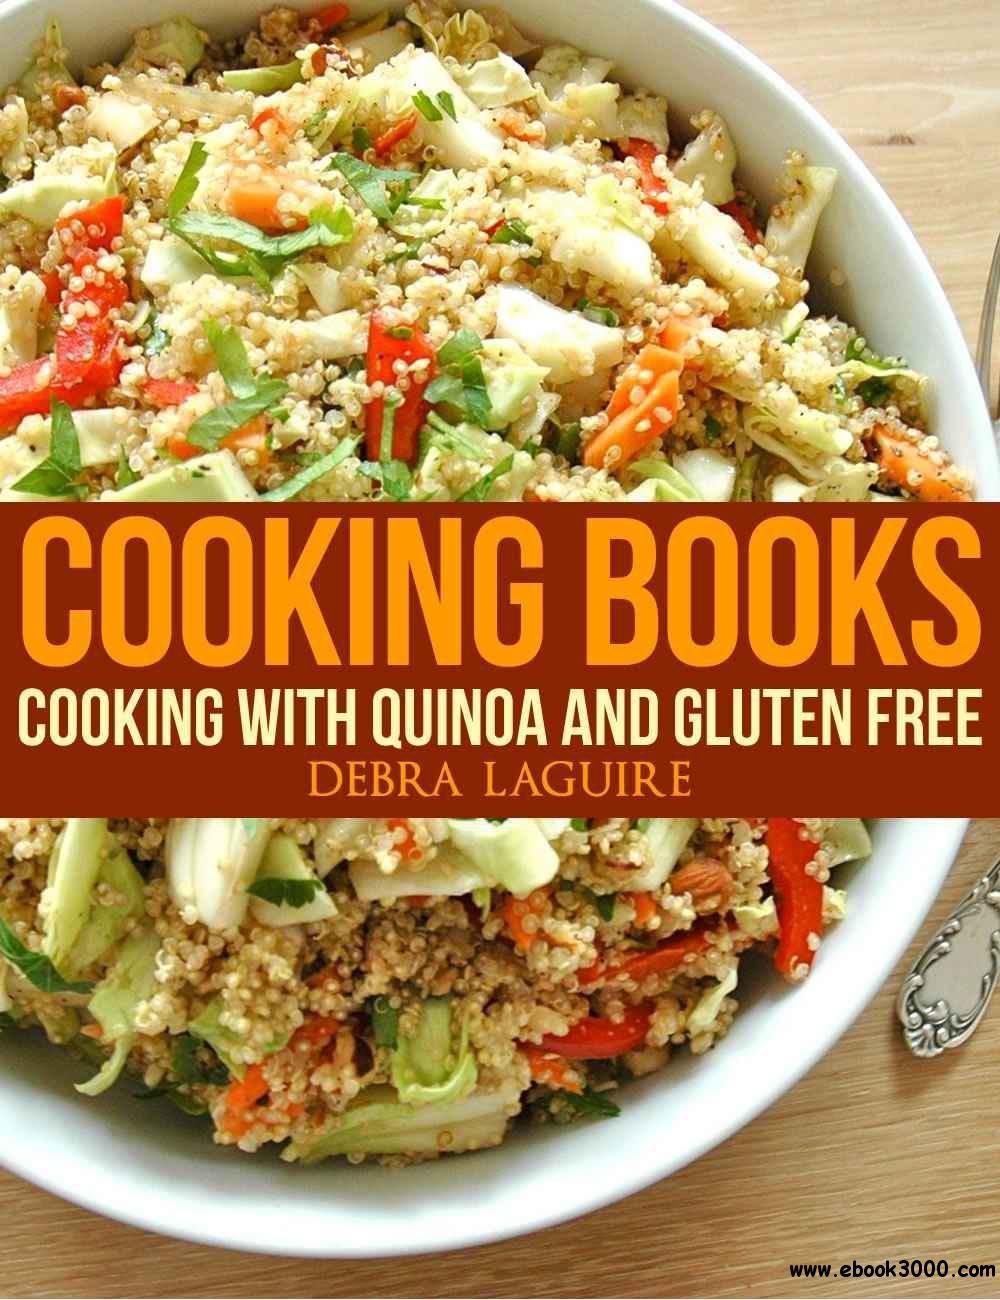 Cooking Books: Cooking with Quinoa and Gluten Free free download